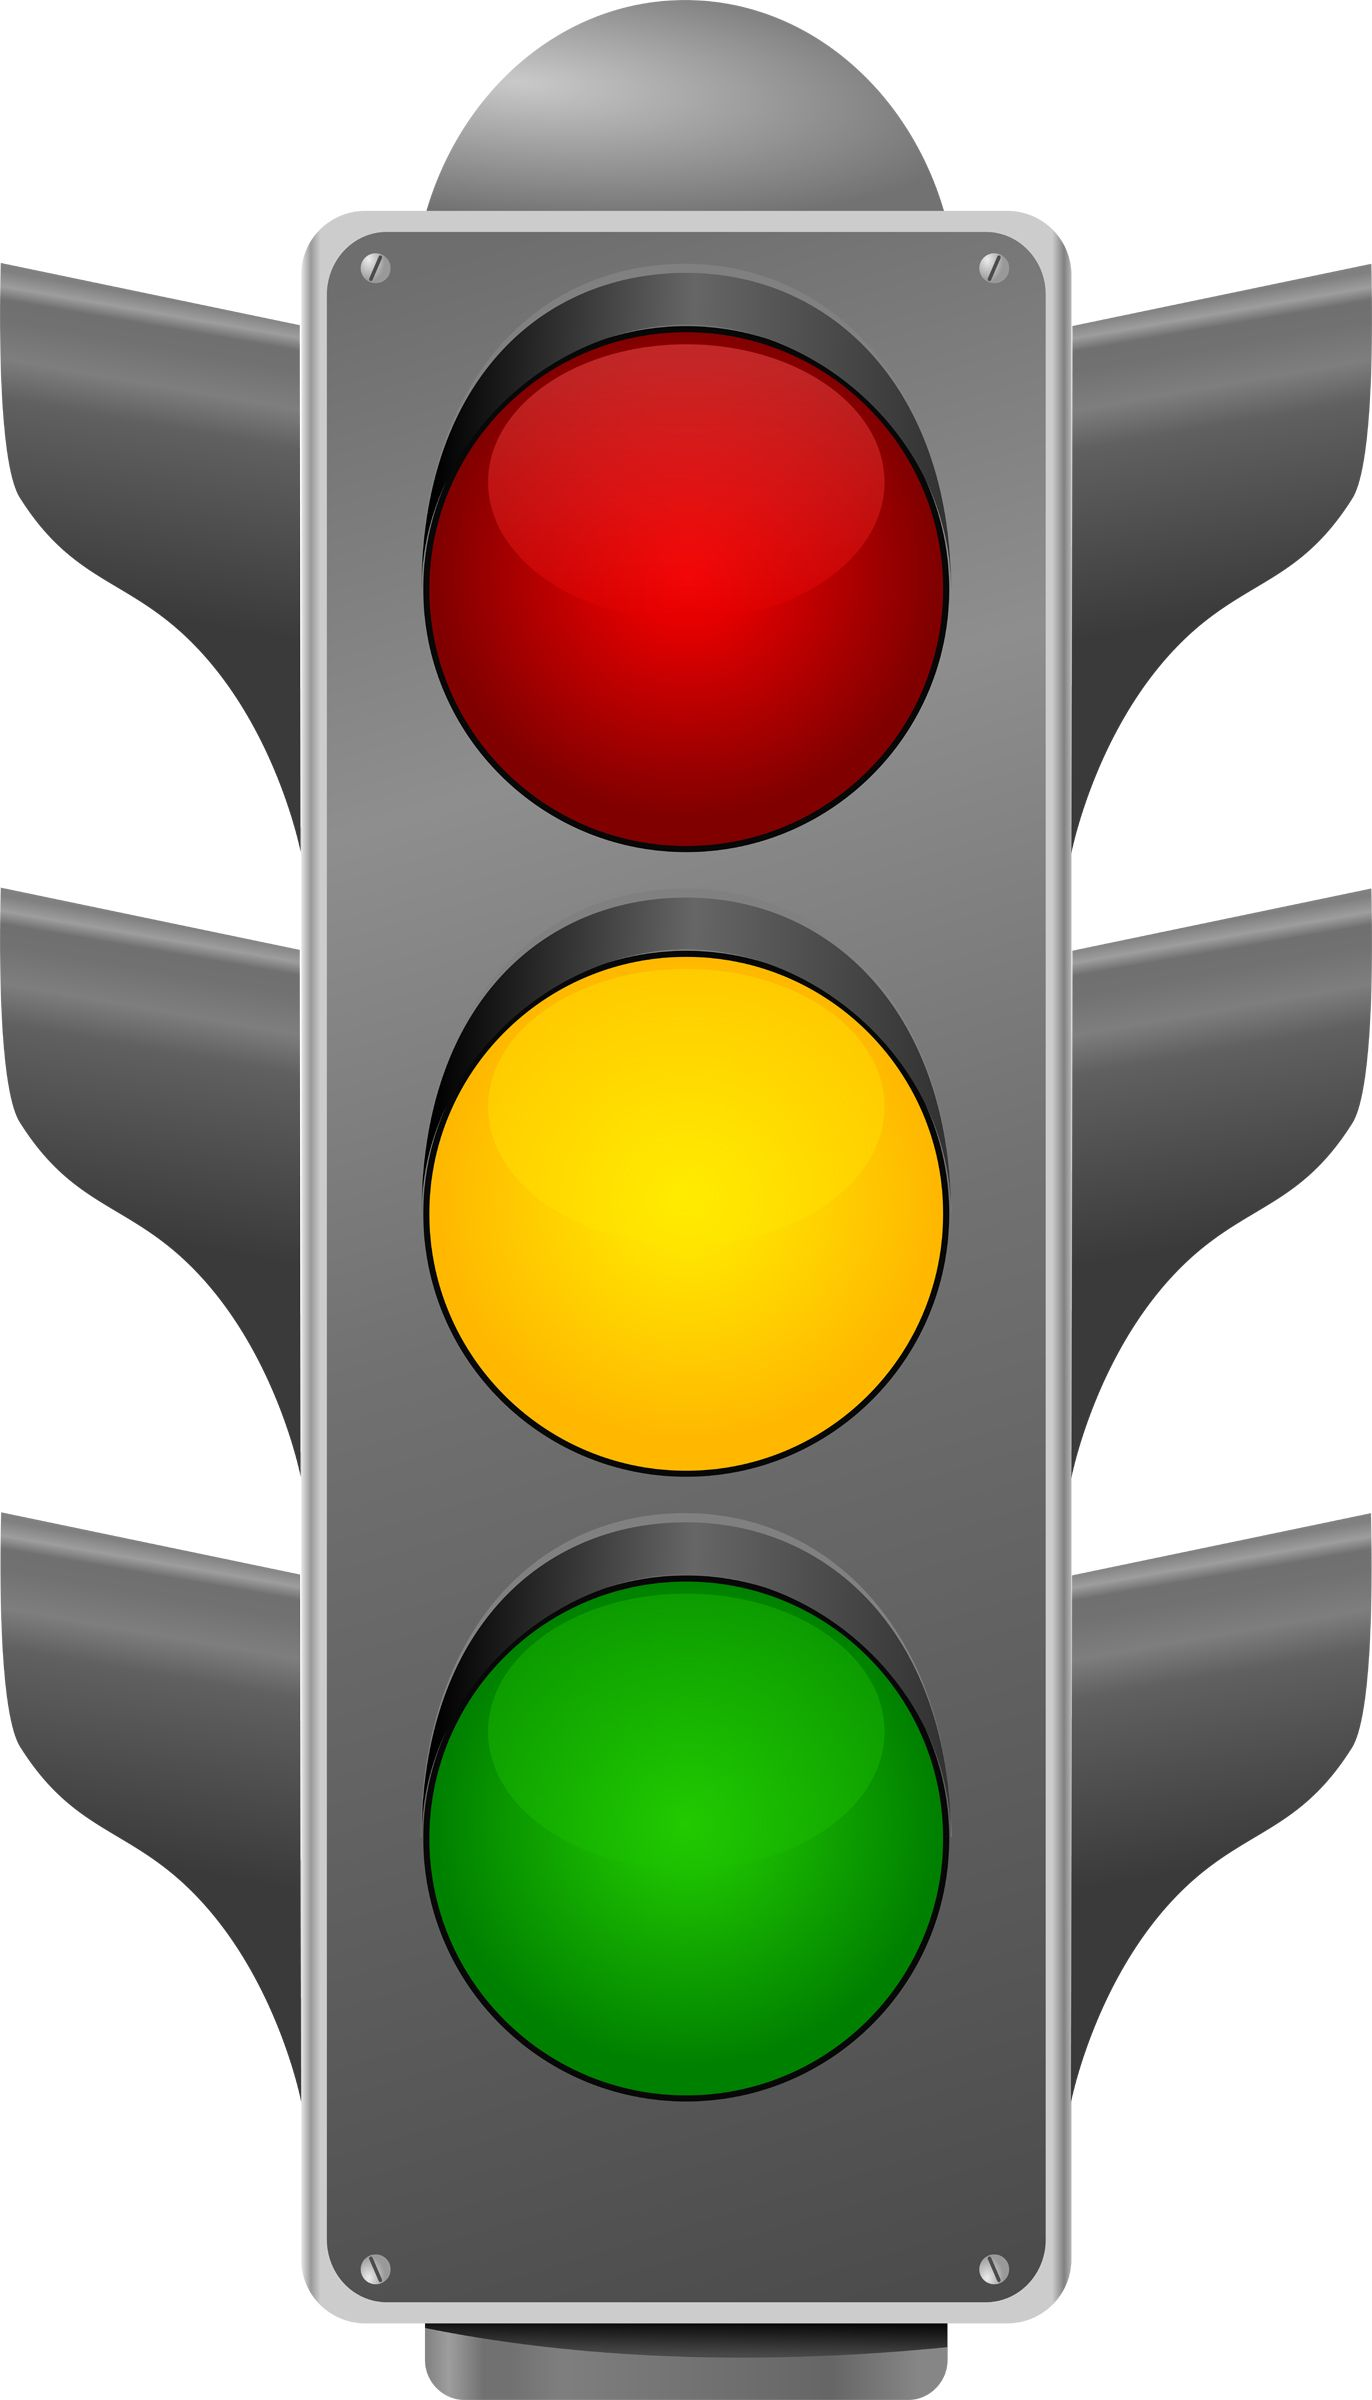 traffic signal lights clipart best artistic ideas rh pinterest com traffic light clip art project status traffic light clipart green